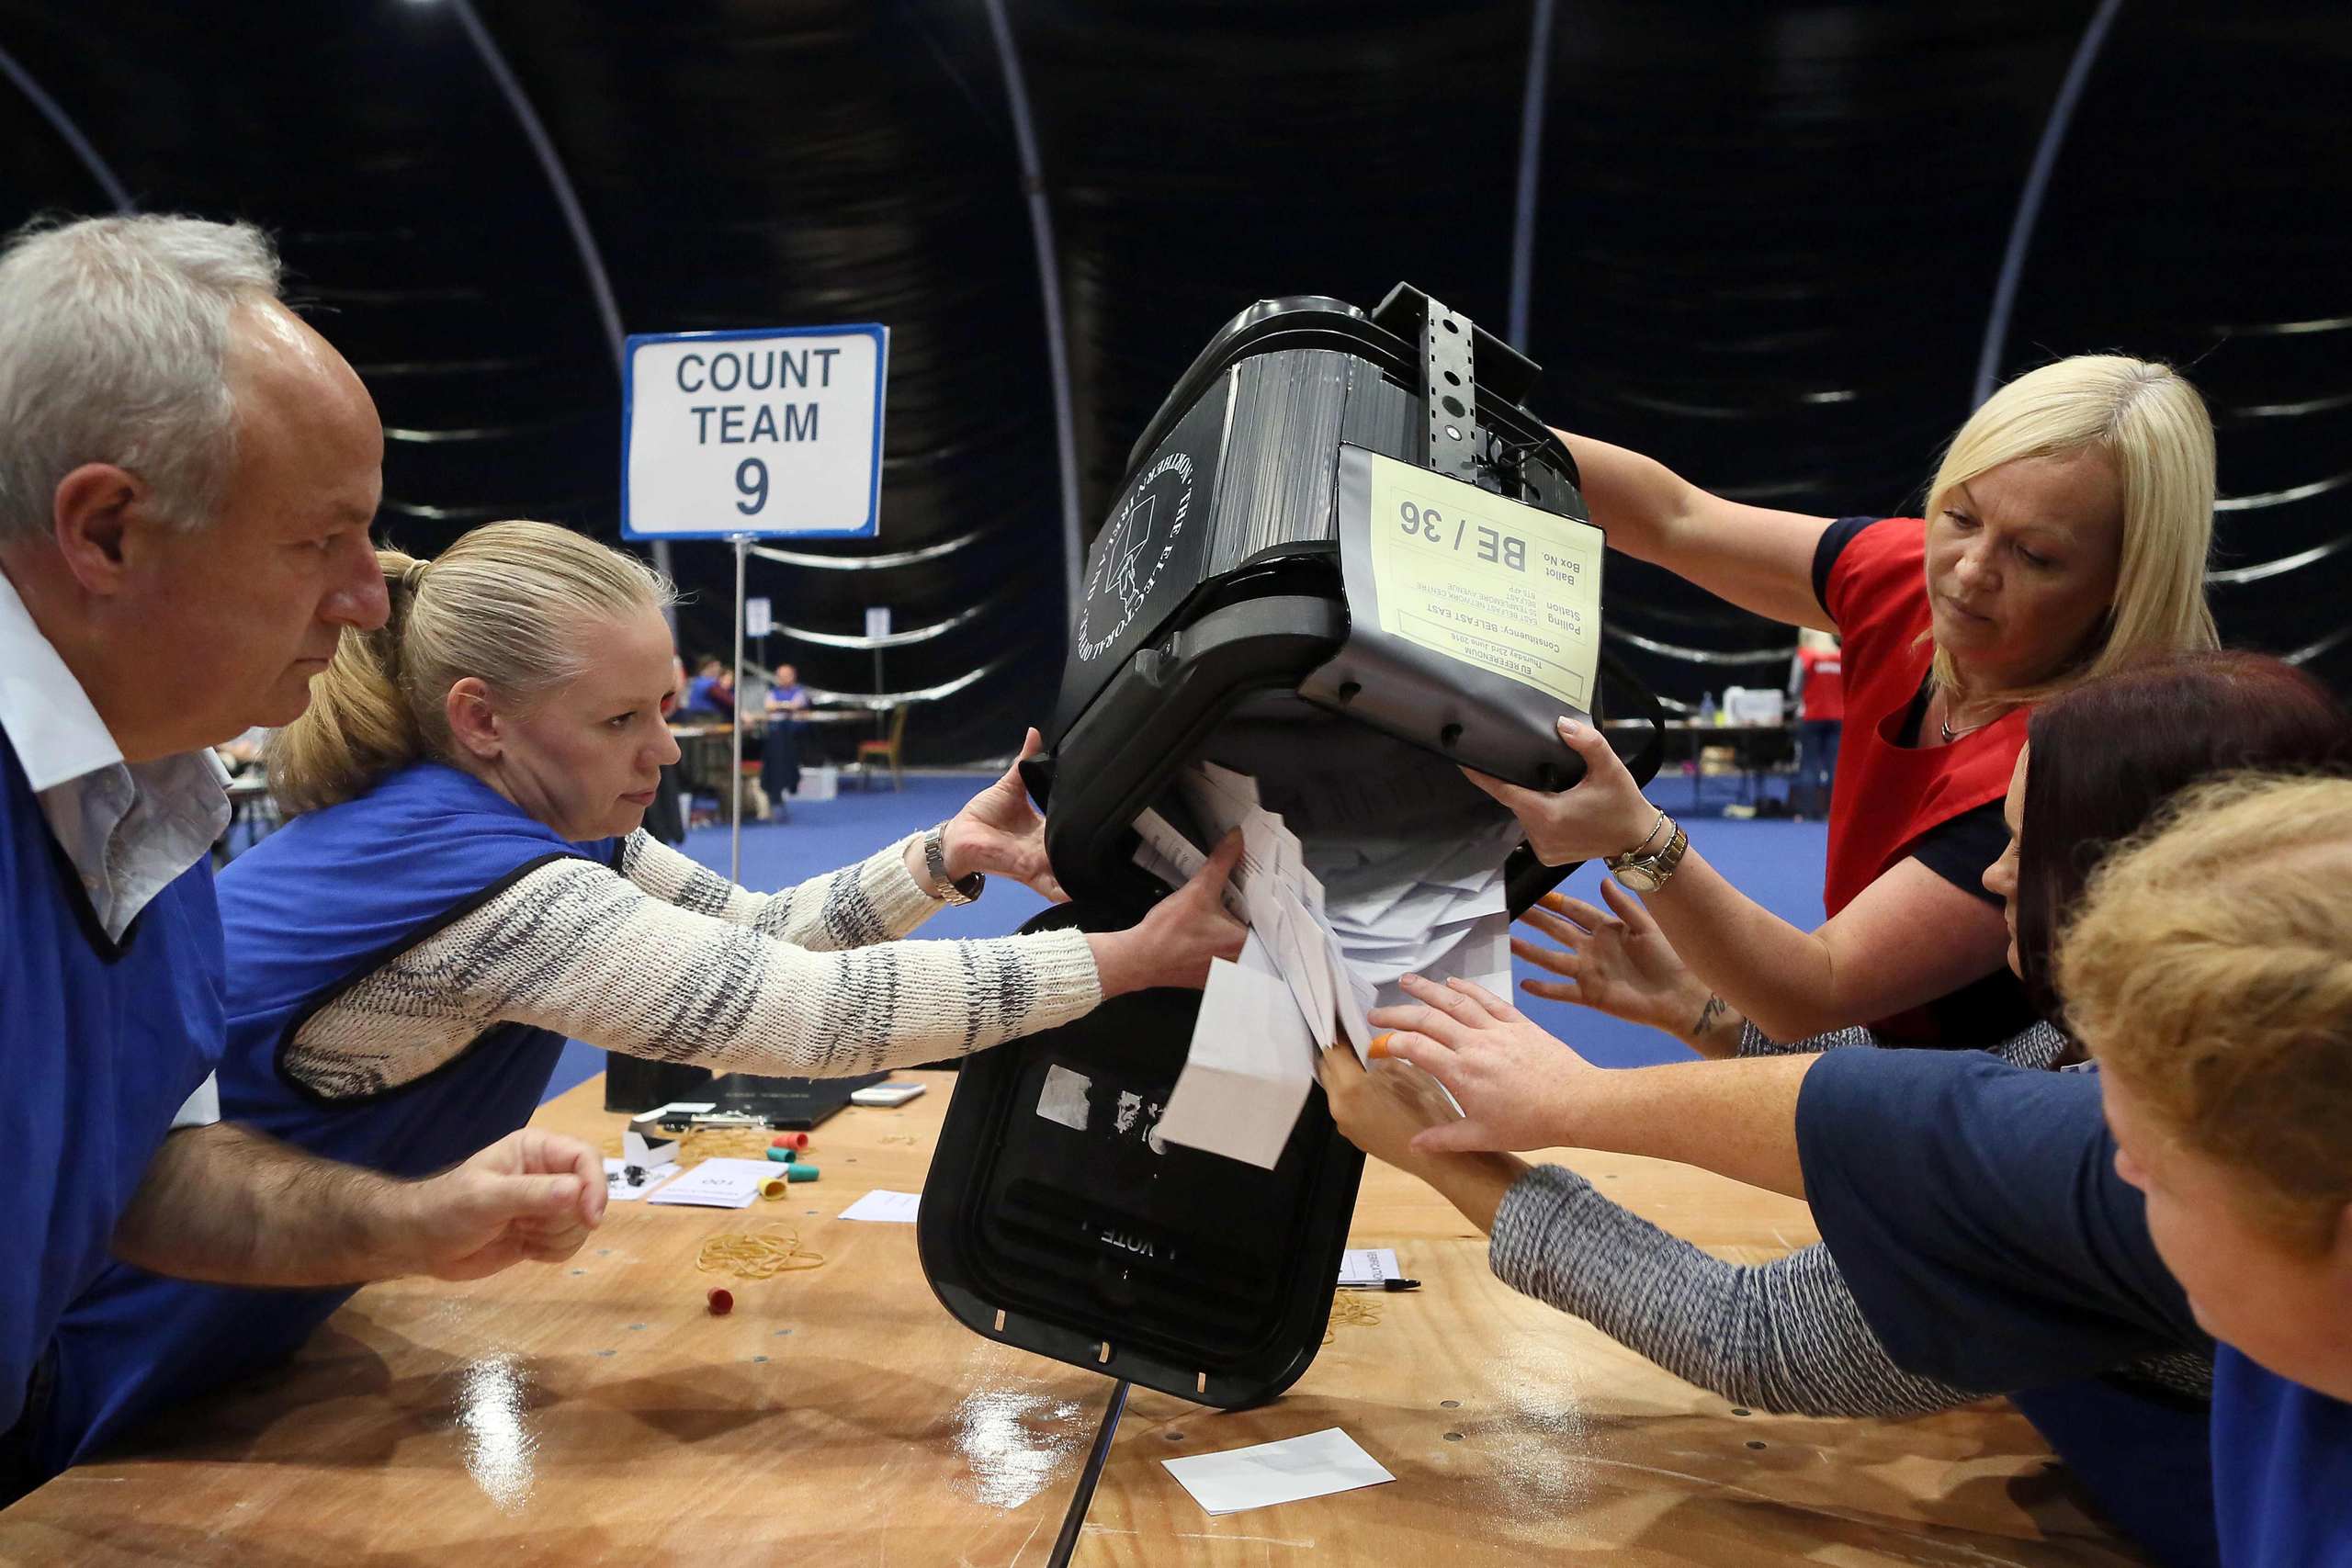 The first ballot boxes are opened at the Titanic Exhibition Center, the Belfast count center after polls closed in the referendum on whether the UK will stay in the European Union on June 23, 2016.